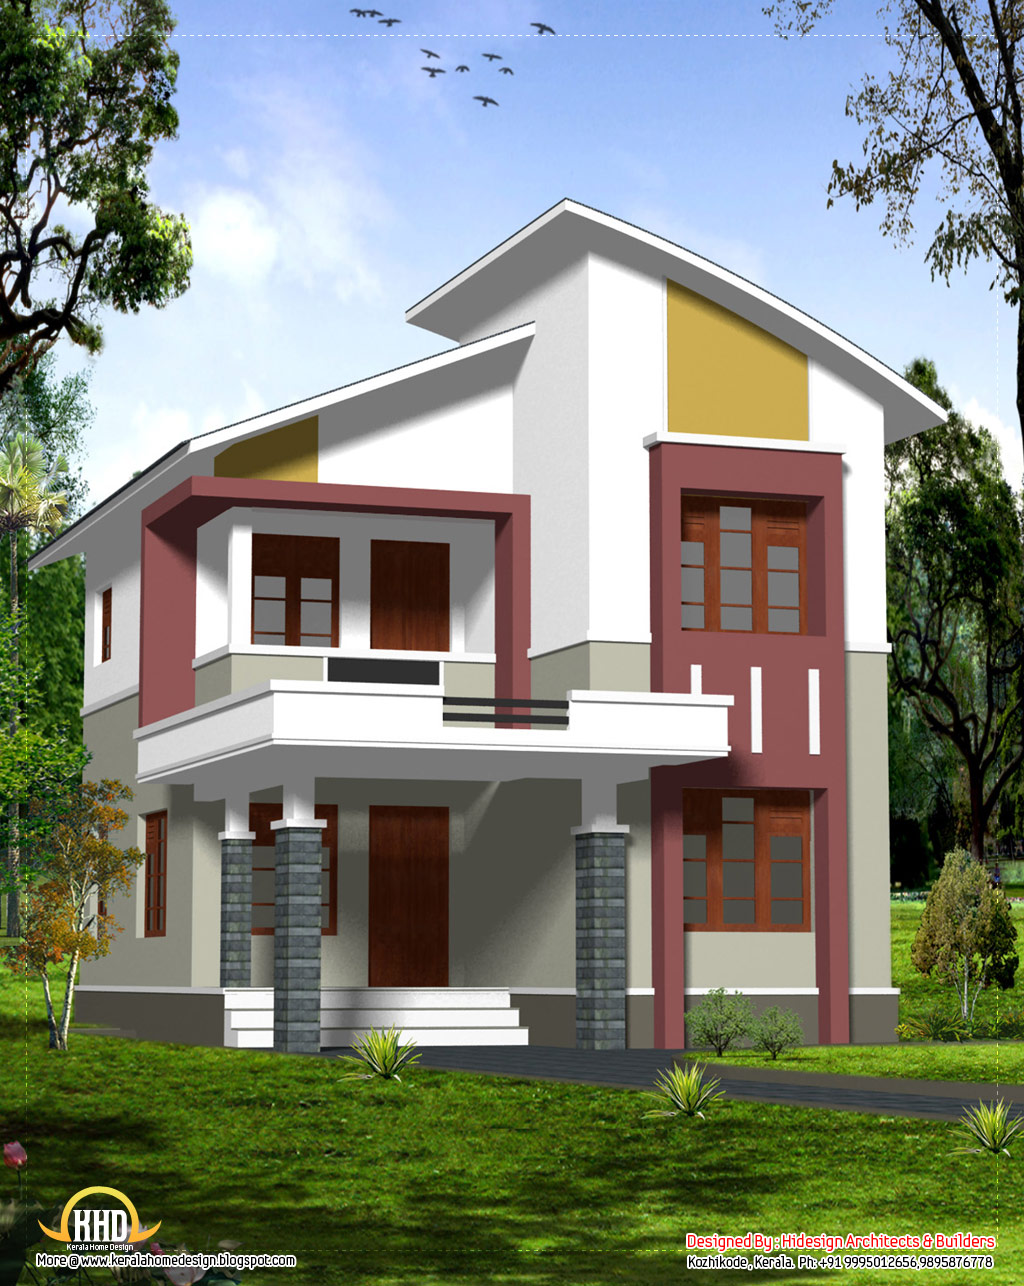 Budget home design 2140 sq ft kerala home design and - Home design at sq ...